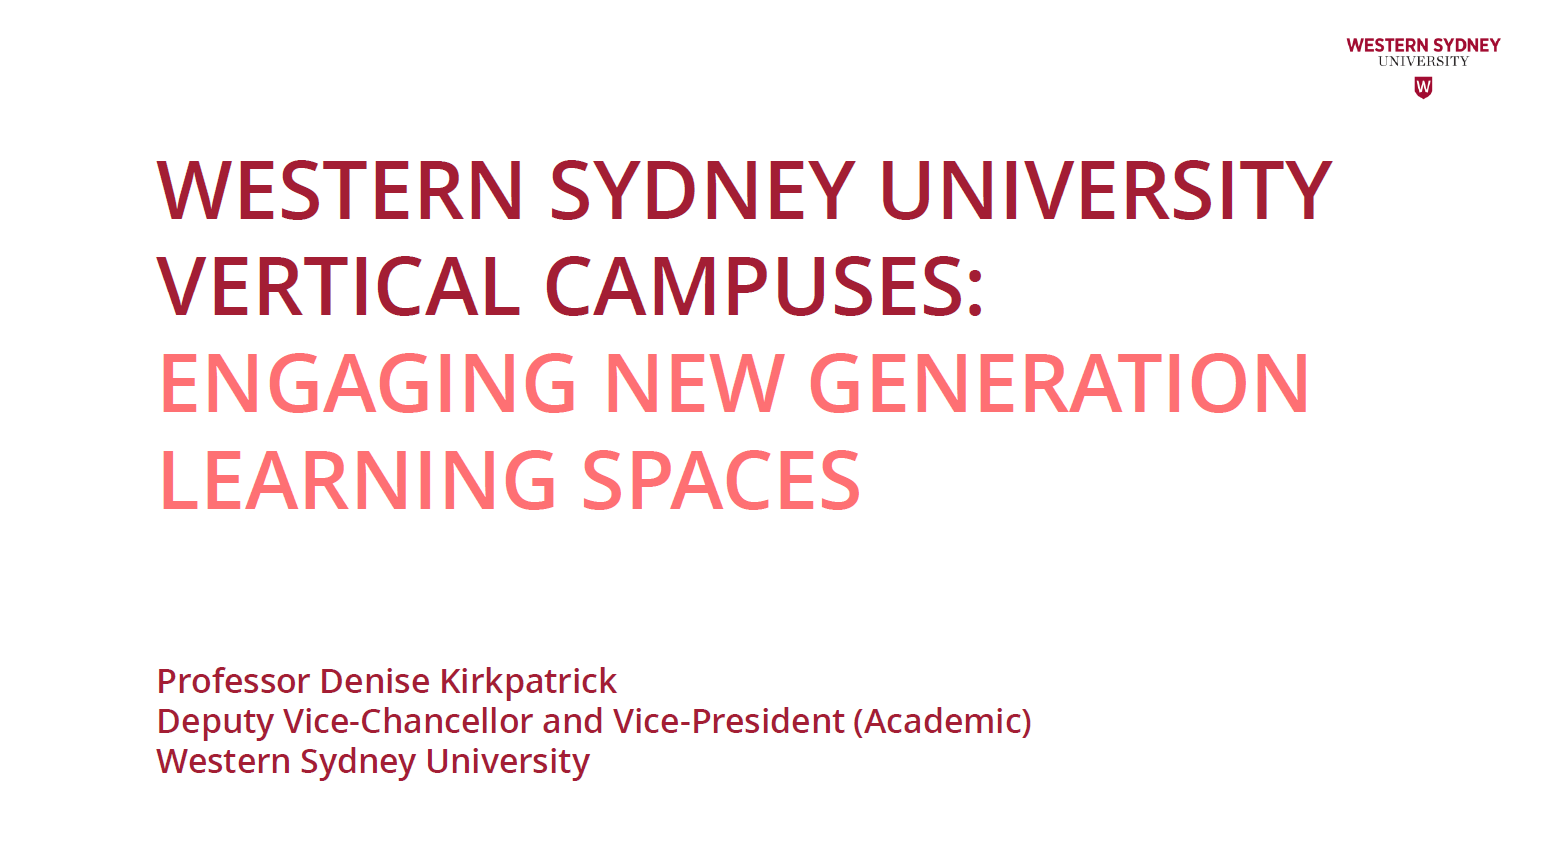 Focusing on Western Sydney University's First Vertical Campuses as Improved and Engaging New Generation Learning Spaces